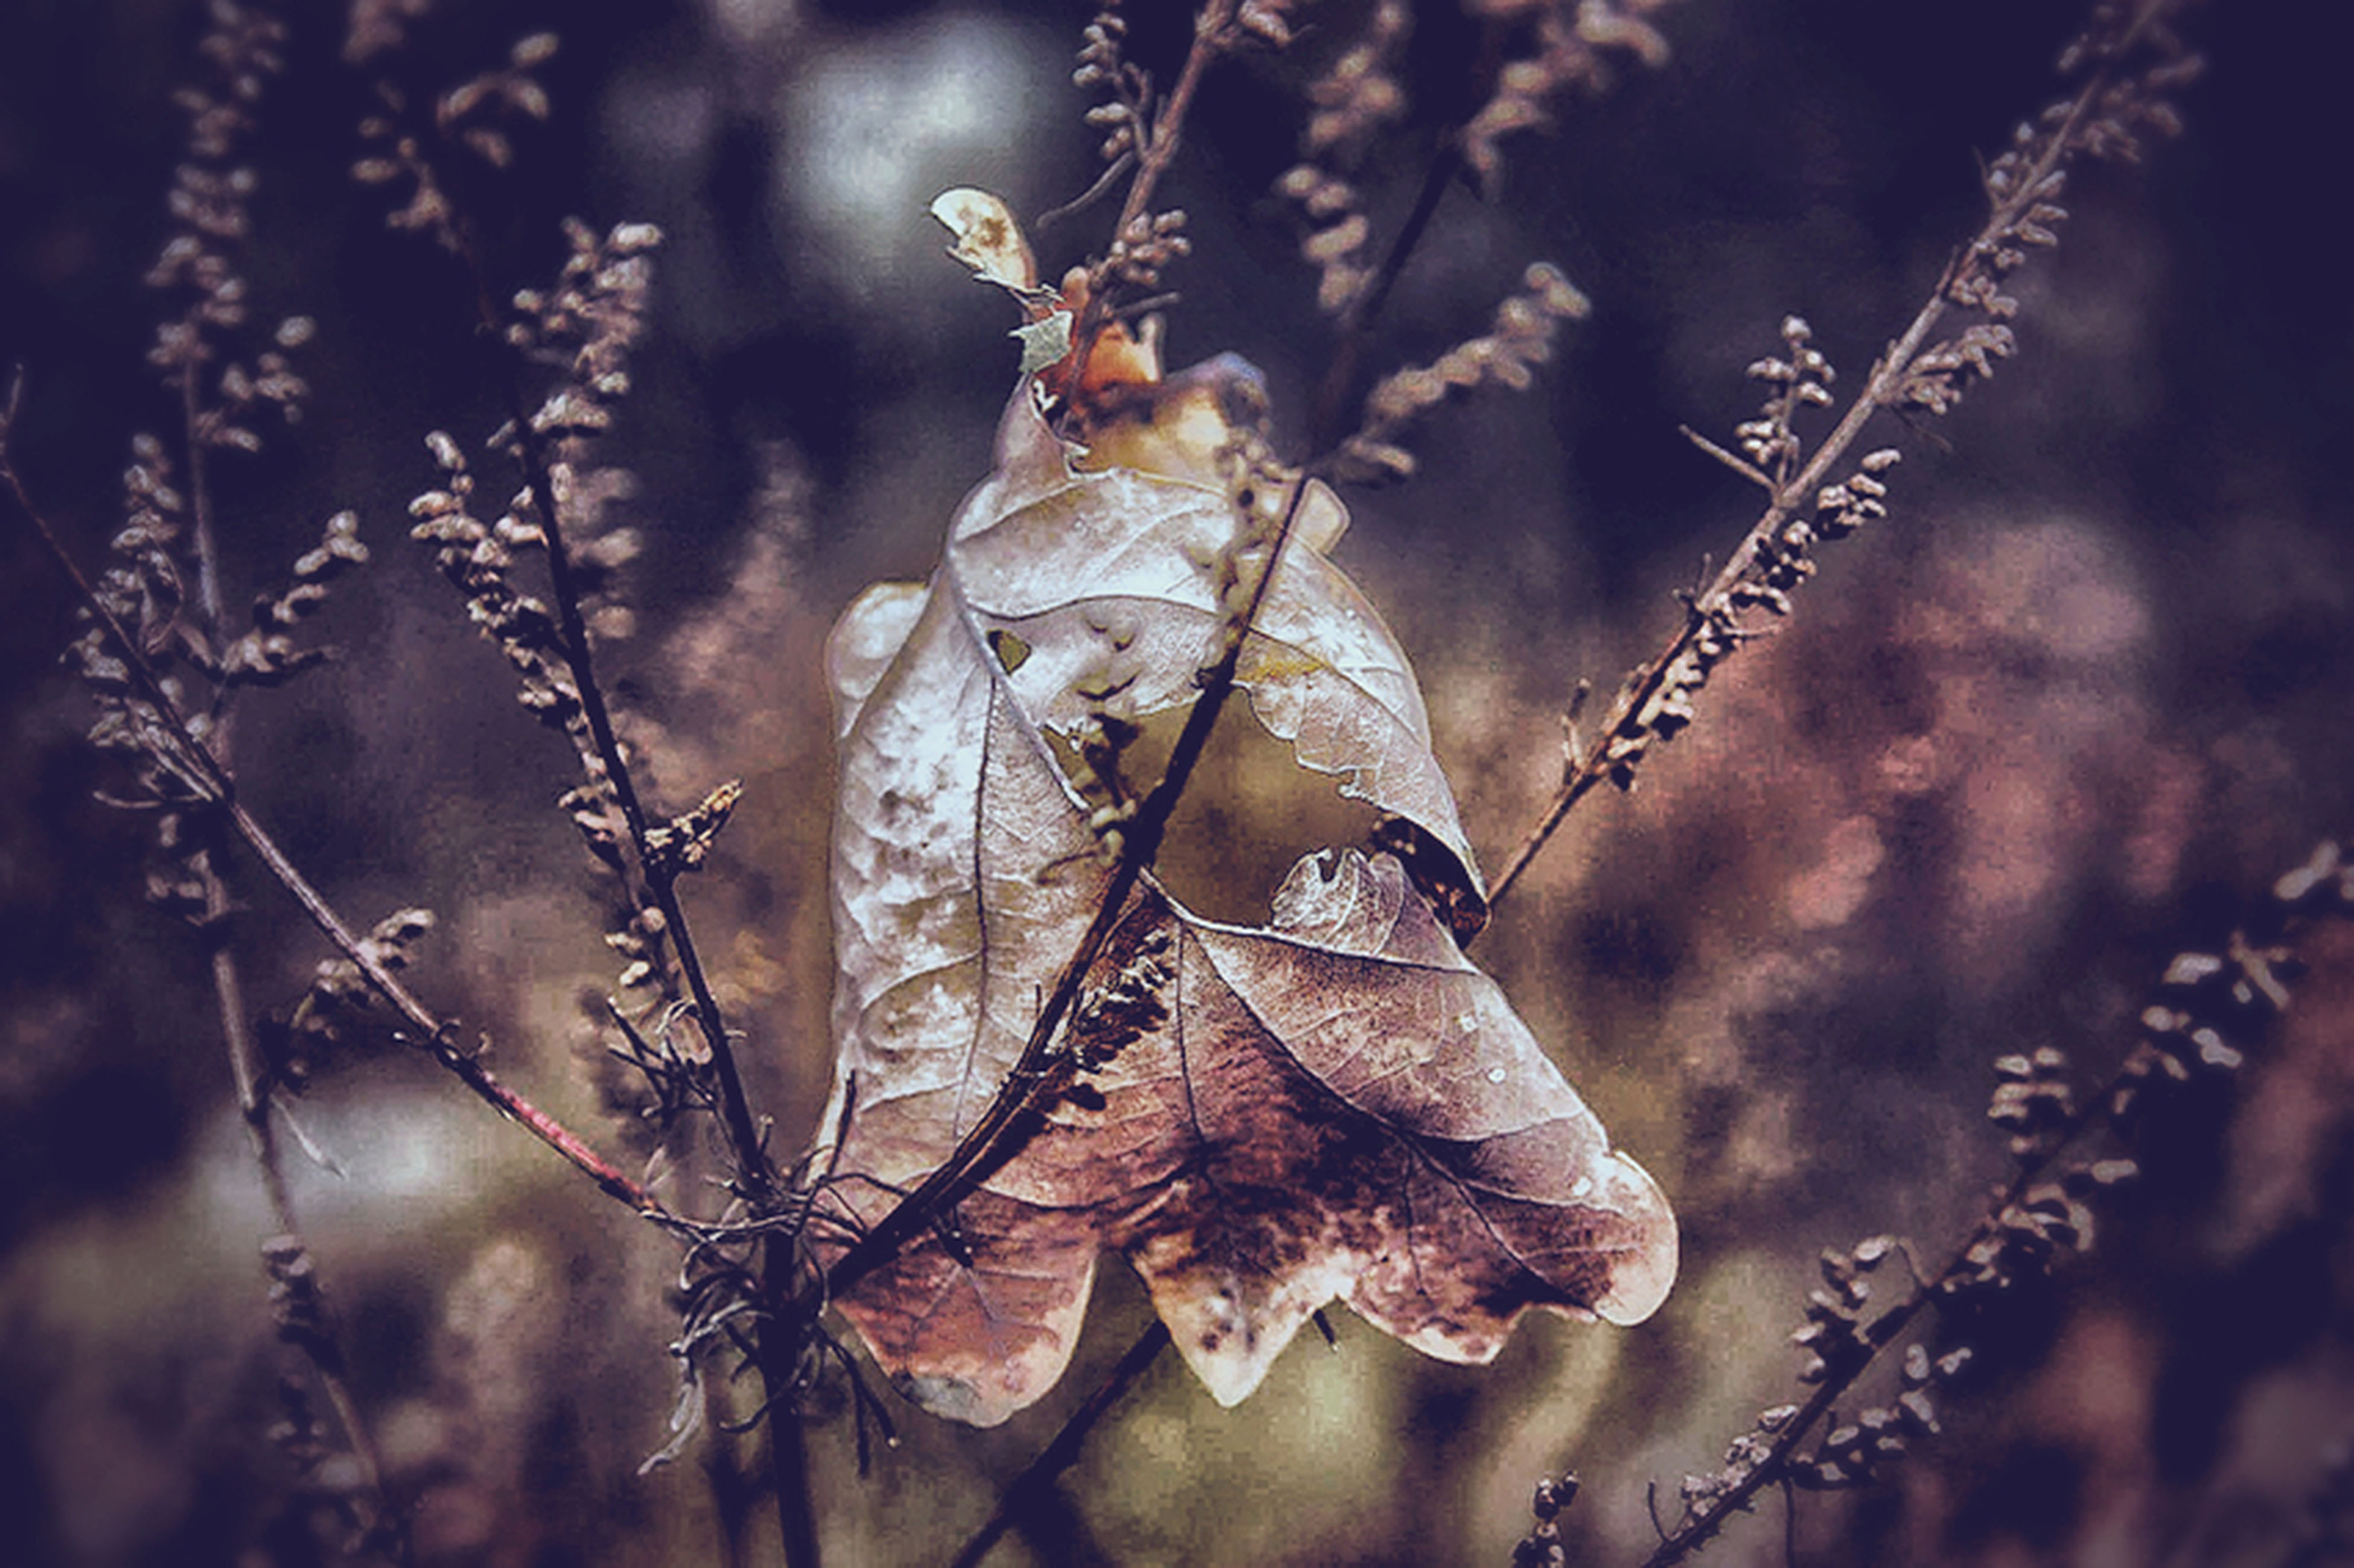 nature, one animal, focus on foreground, close-up, animal themes, insect, animals in the wild, no people, plant, outdoors, spider web, day, animal wildlife, beauty in nature, tree, spider, fragility, butterfly - insect, wilted plant, web